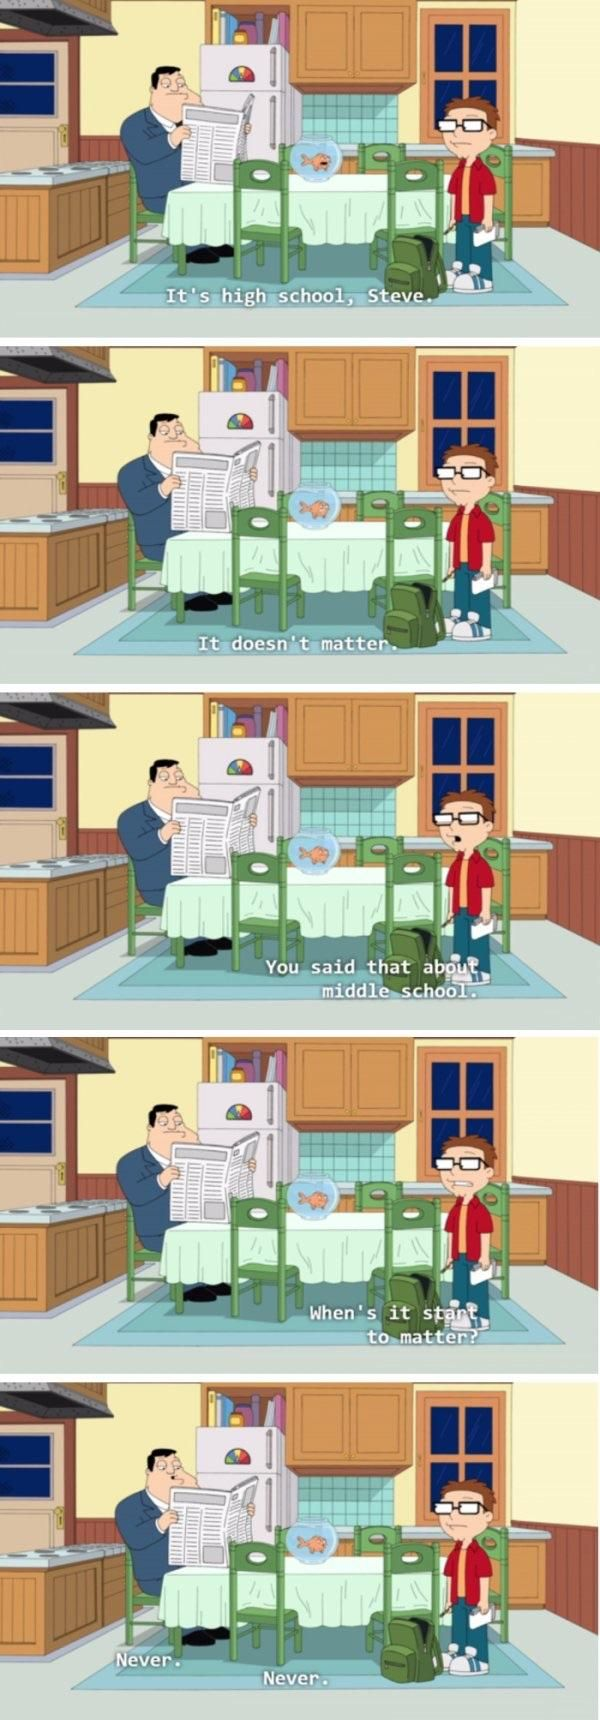 With school starting. Some truth from American Dad.